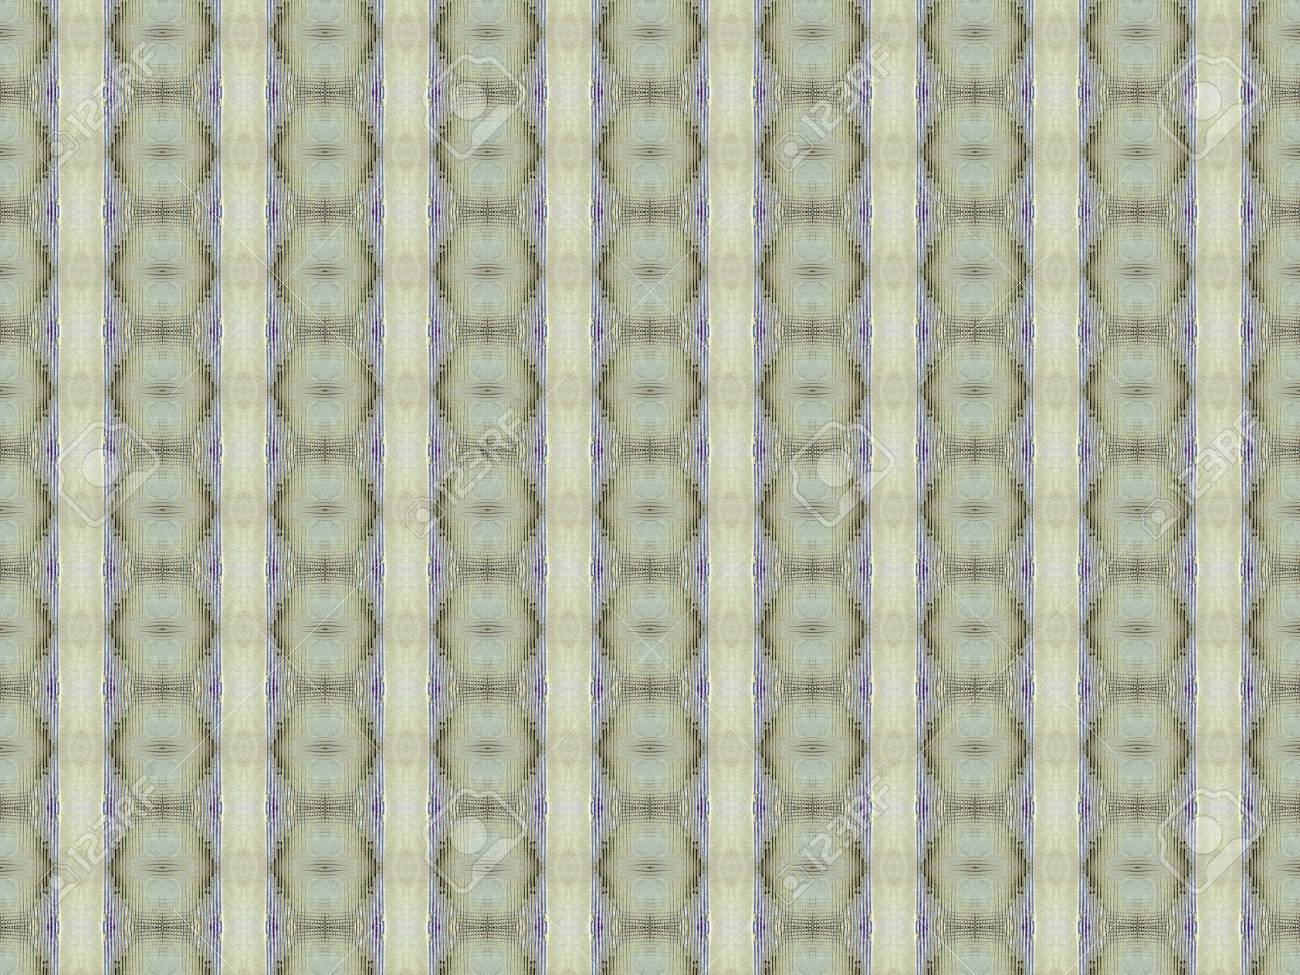 Vintage shabby background with classy patterns  Geometric or floral pattern on paper texture in grunge style Stock Photo - 17341983